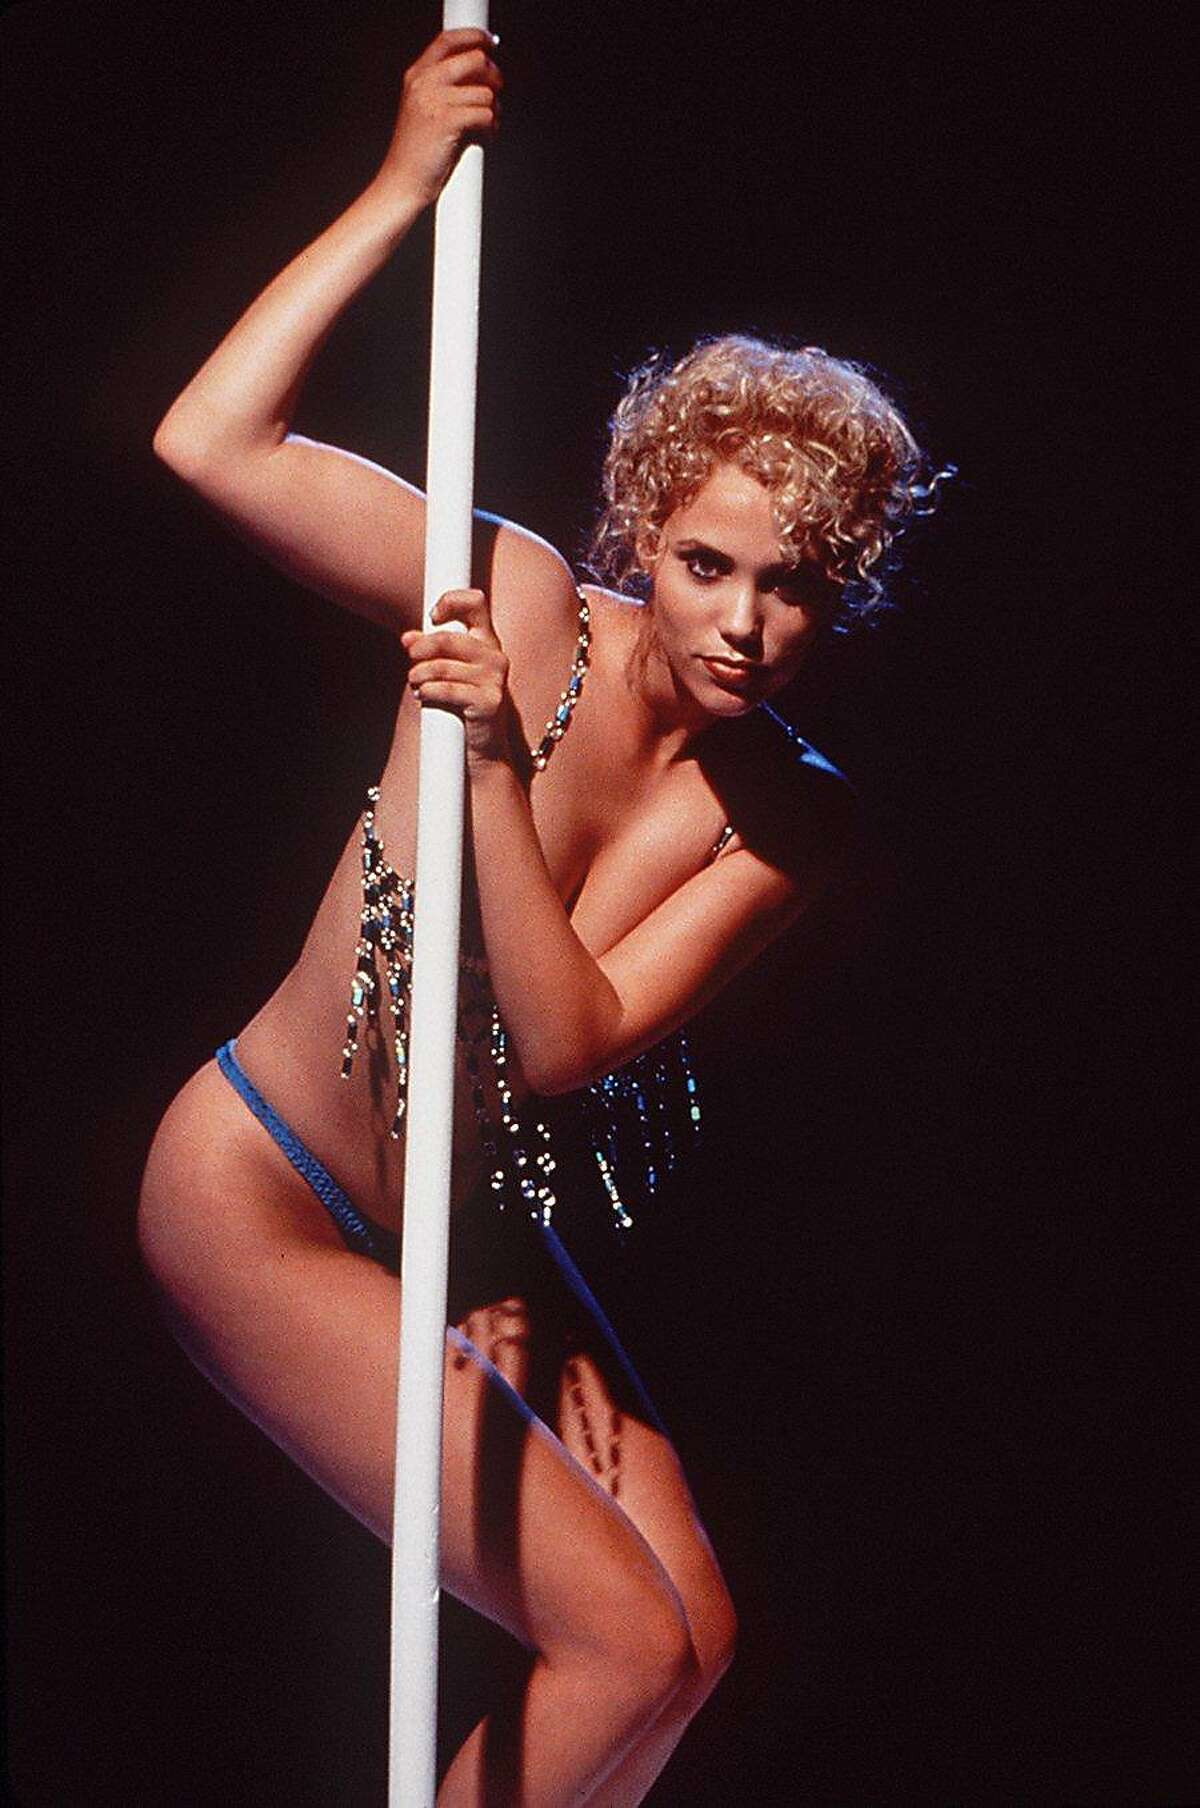 SHOWGIRLS/C/11SEP95/PK/HO-This is a movie still from SHOWGIRLS. PICTURED IS ACTRESS ELIZABETH BERKLEY. PHOTO BY DOUGLAS KIRKLAND/HANDOUT ALSO RAN 12/26/02 Ran on: 08-01-2004